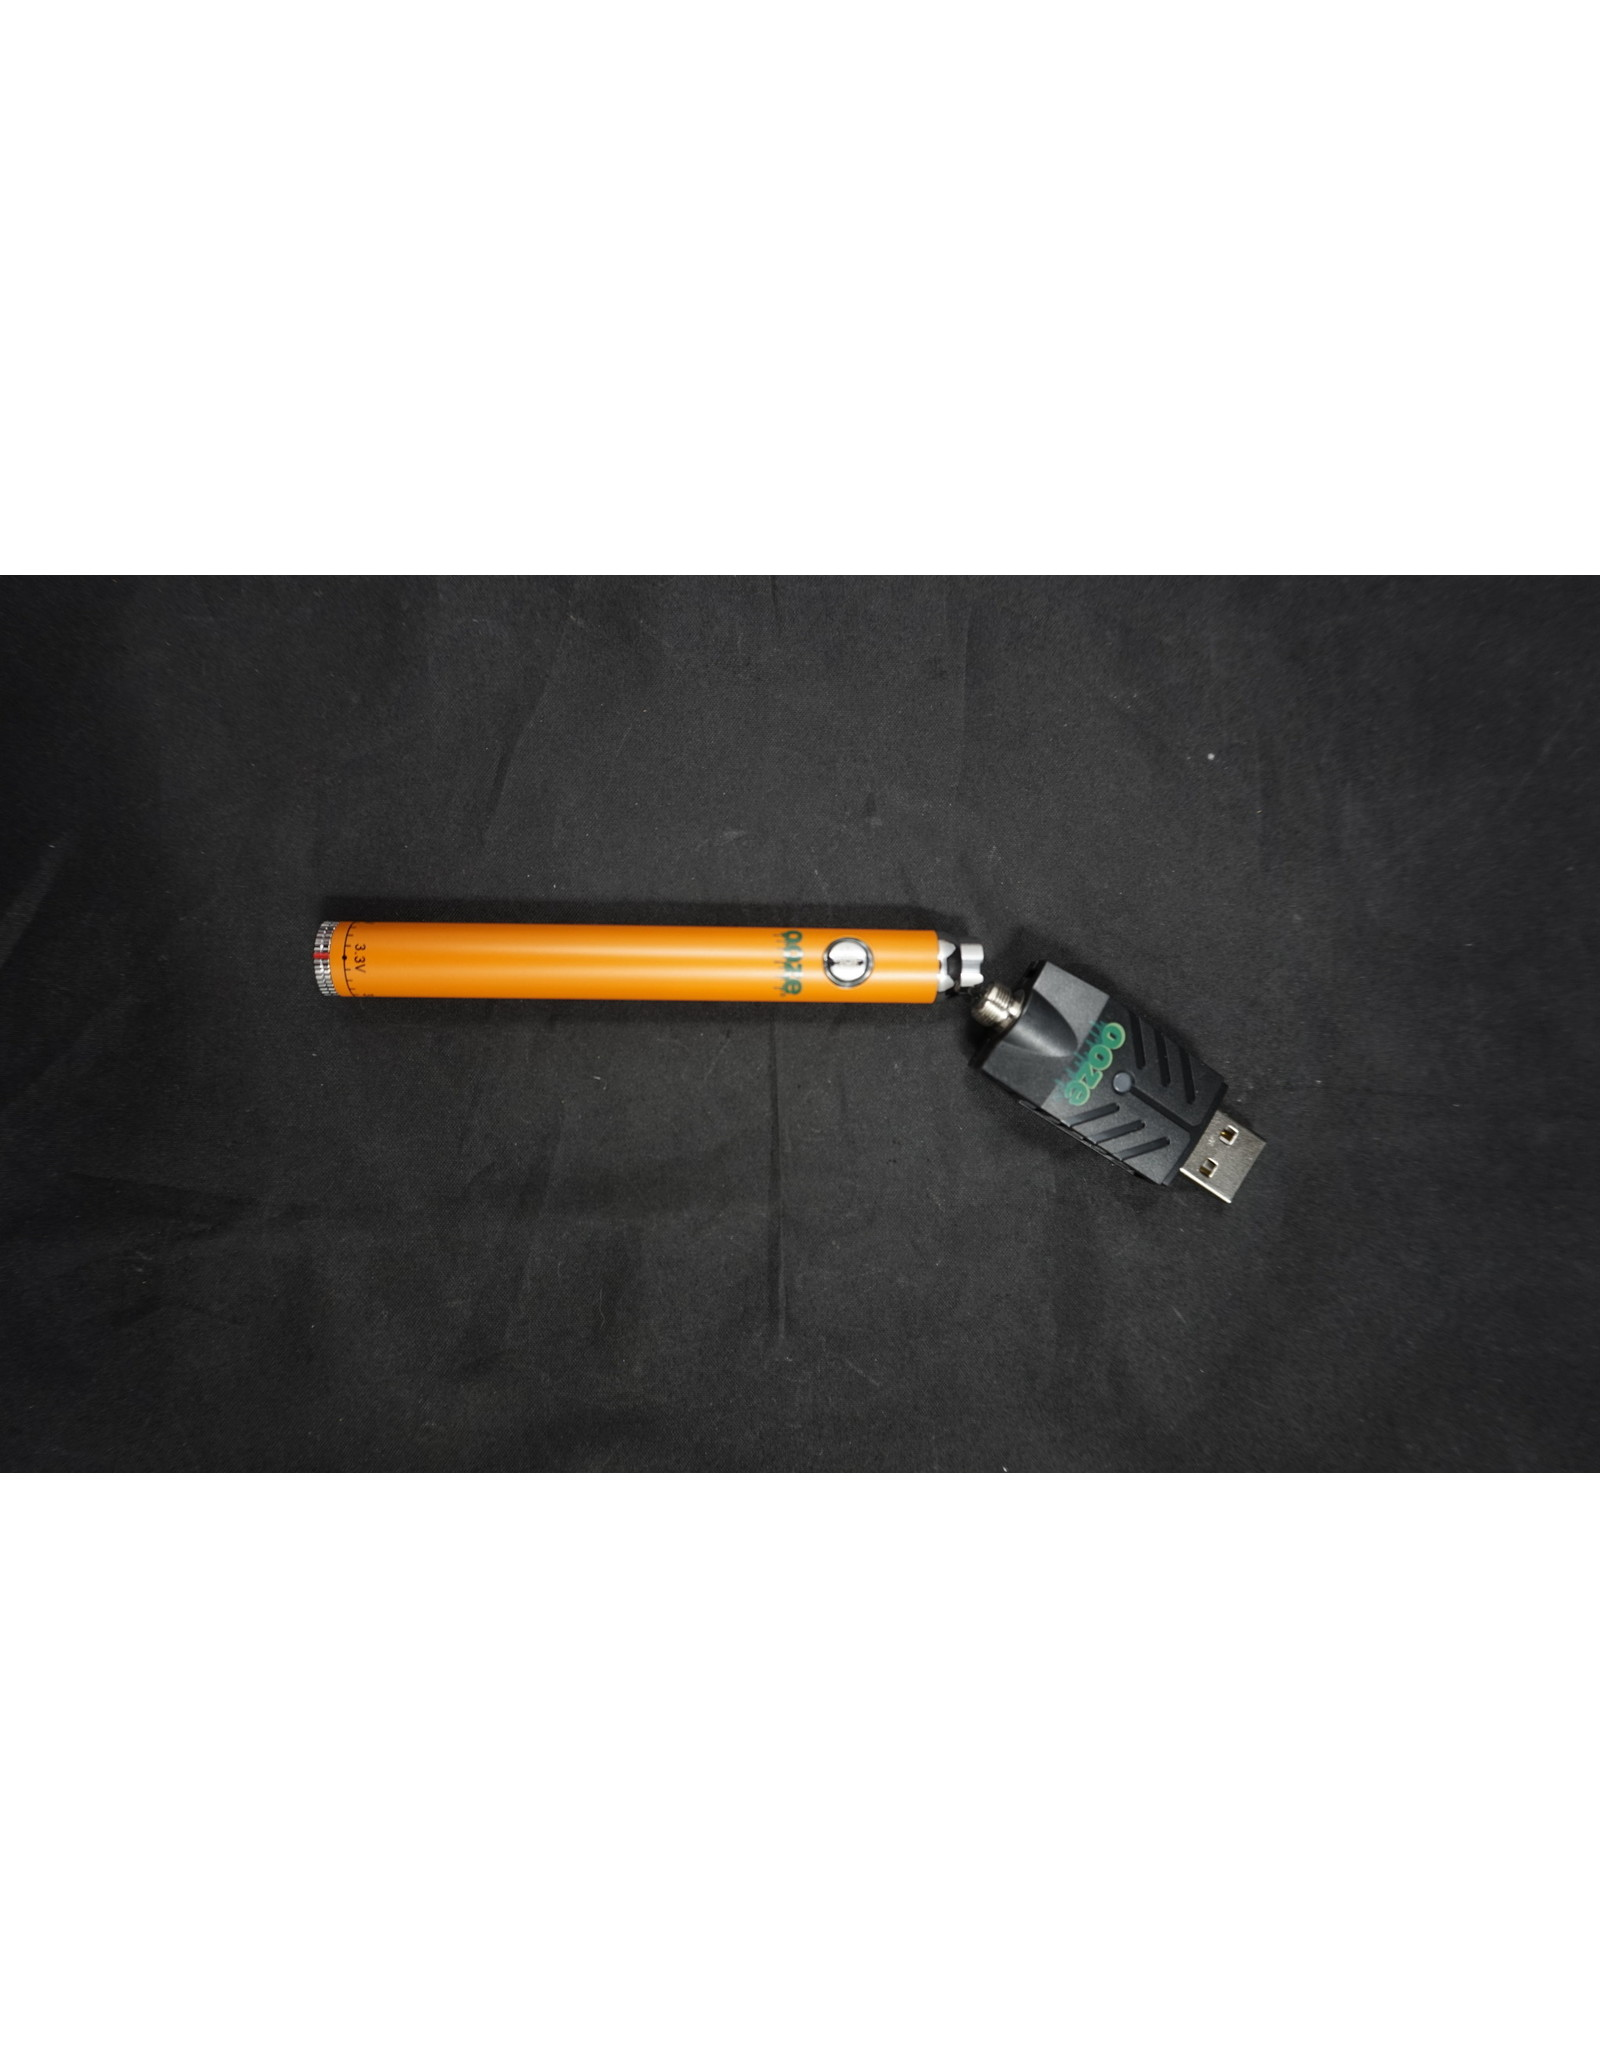 Ooze Ooze Twist Battery with USB Charger Orange